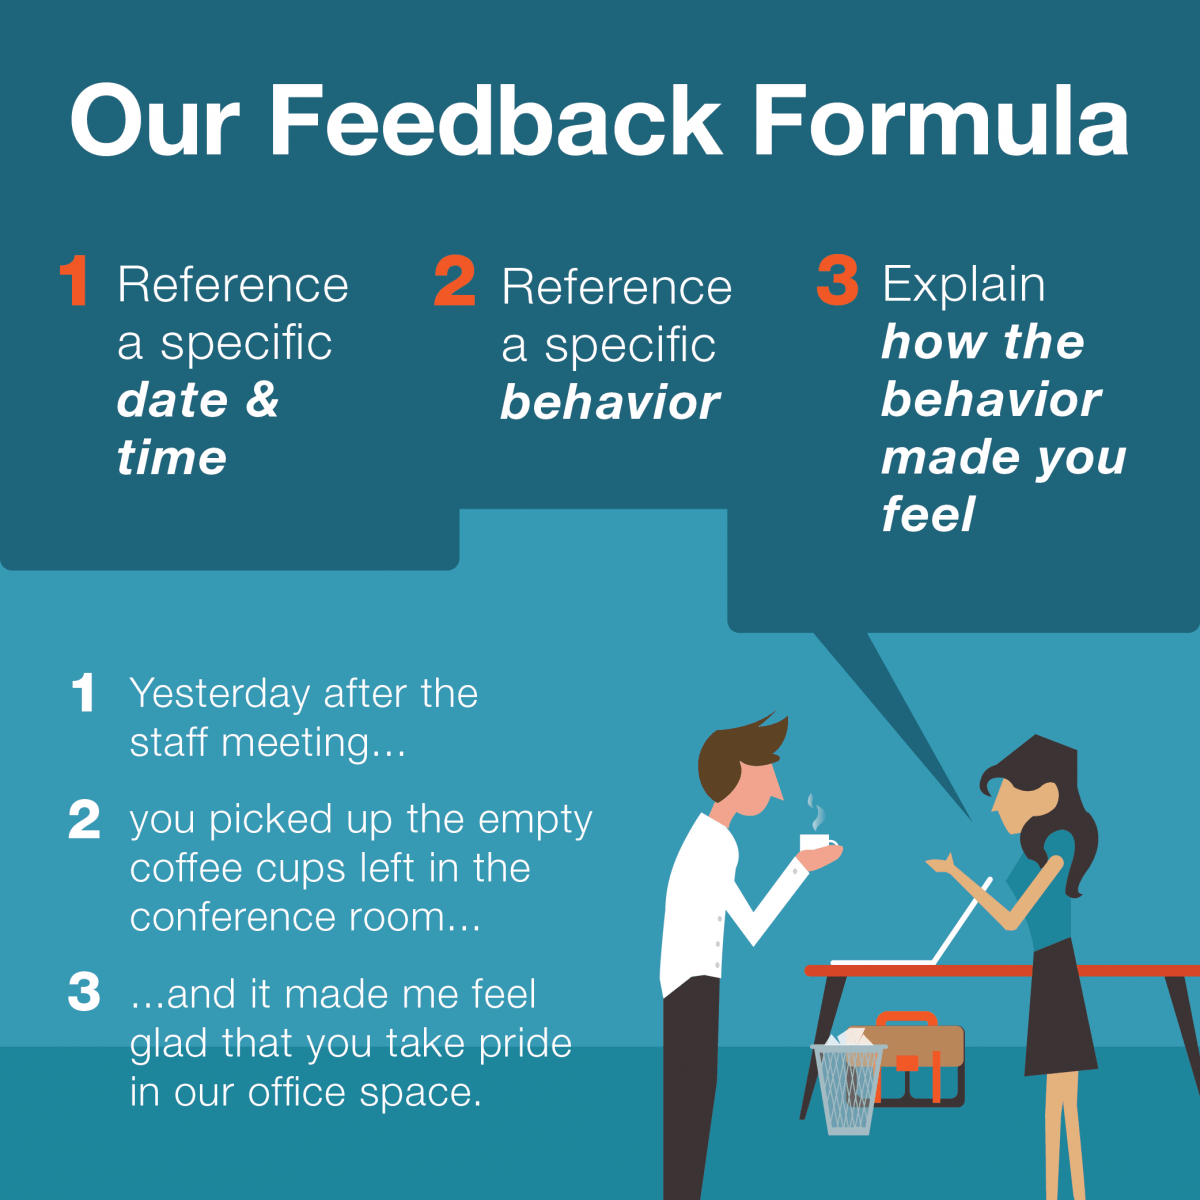 VisionPoint's Feedback Formula